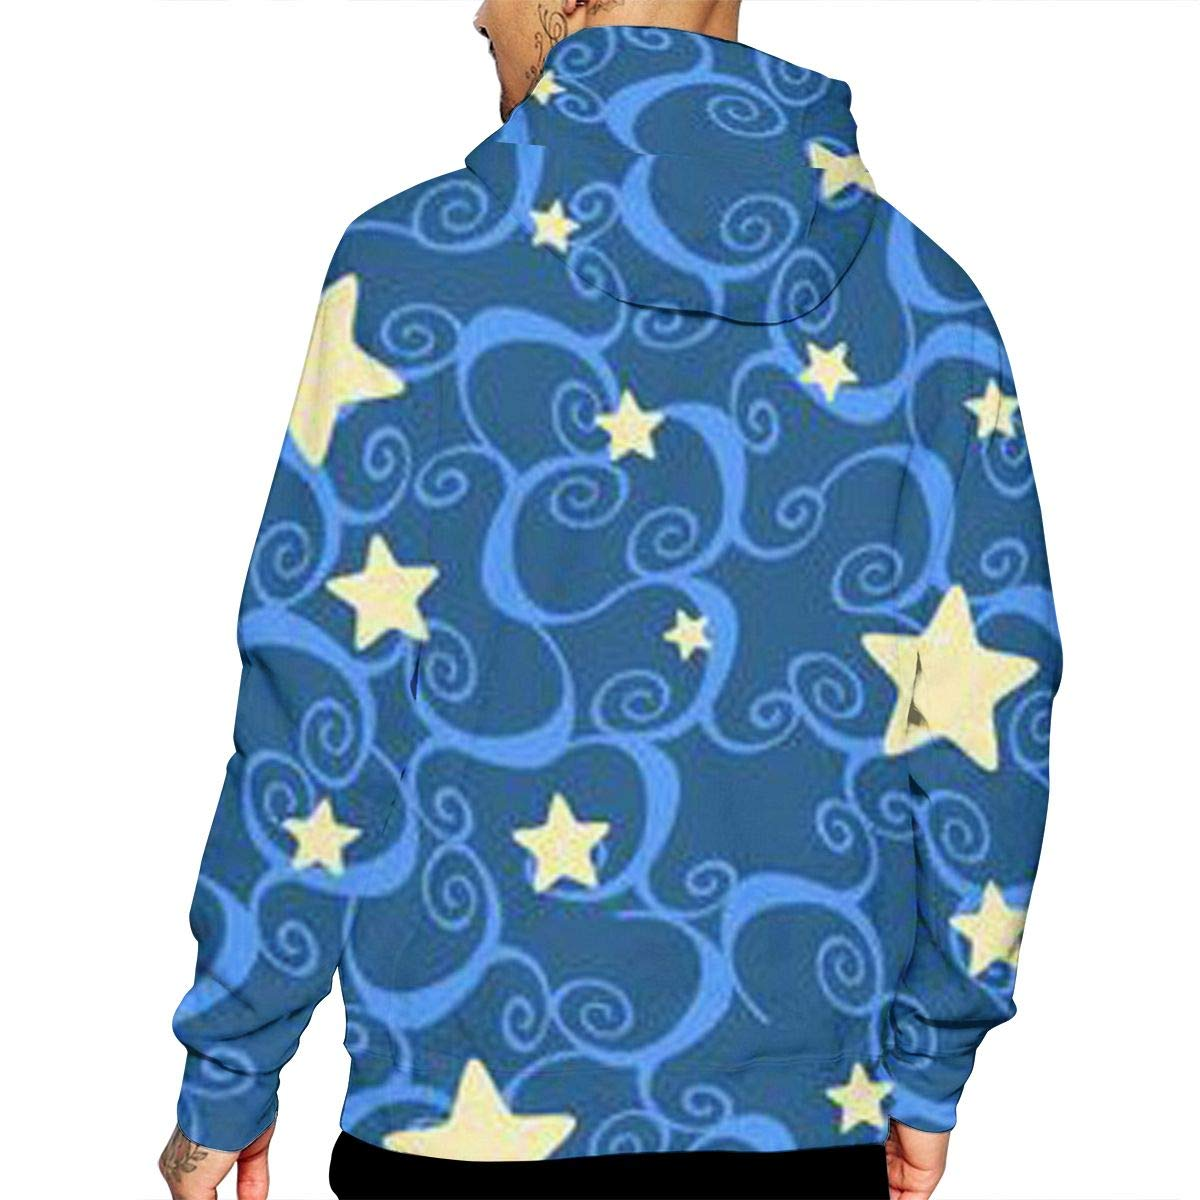 YUANSHAN Stars Wallpaper Mans Long Sleeve Hoodie Casual Pocket Hooded Sweatshirt